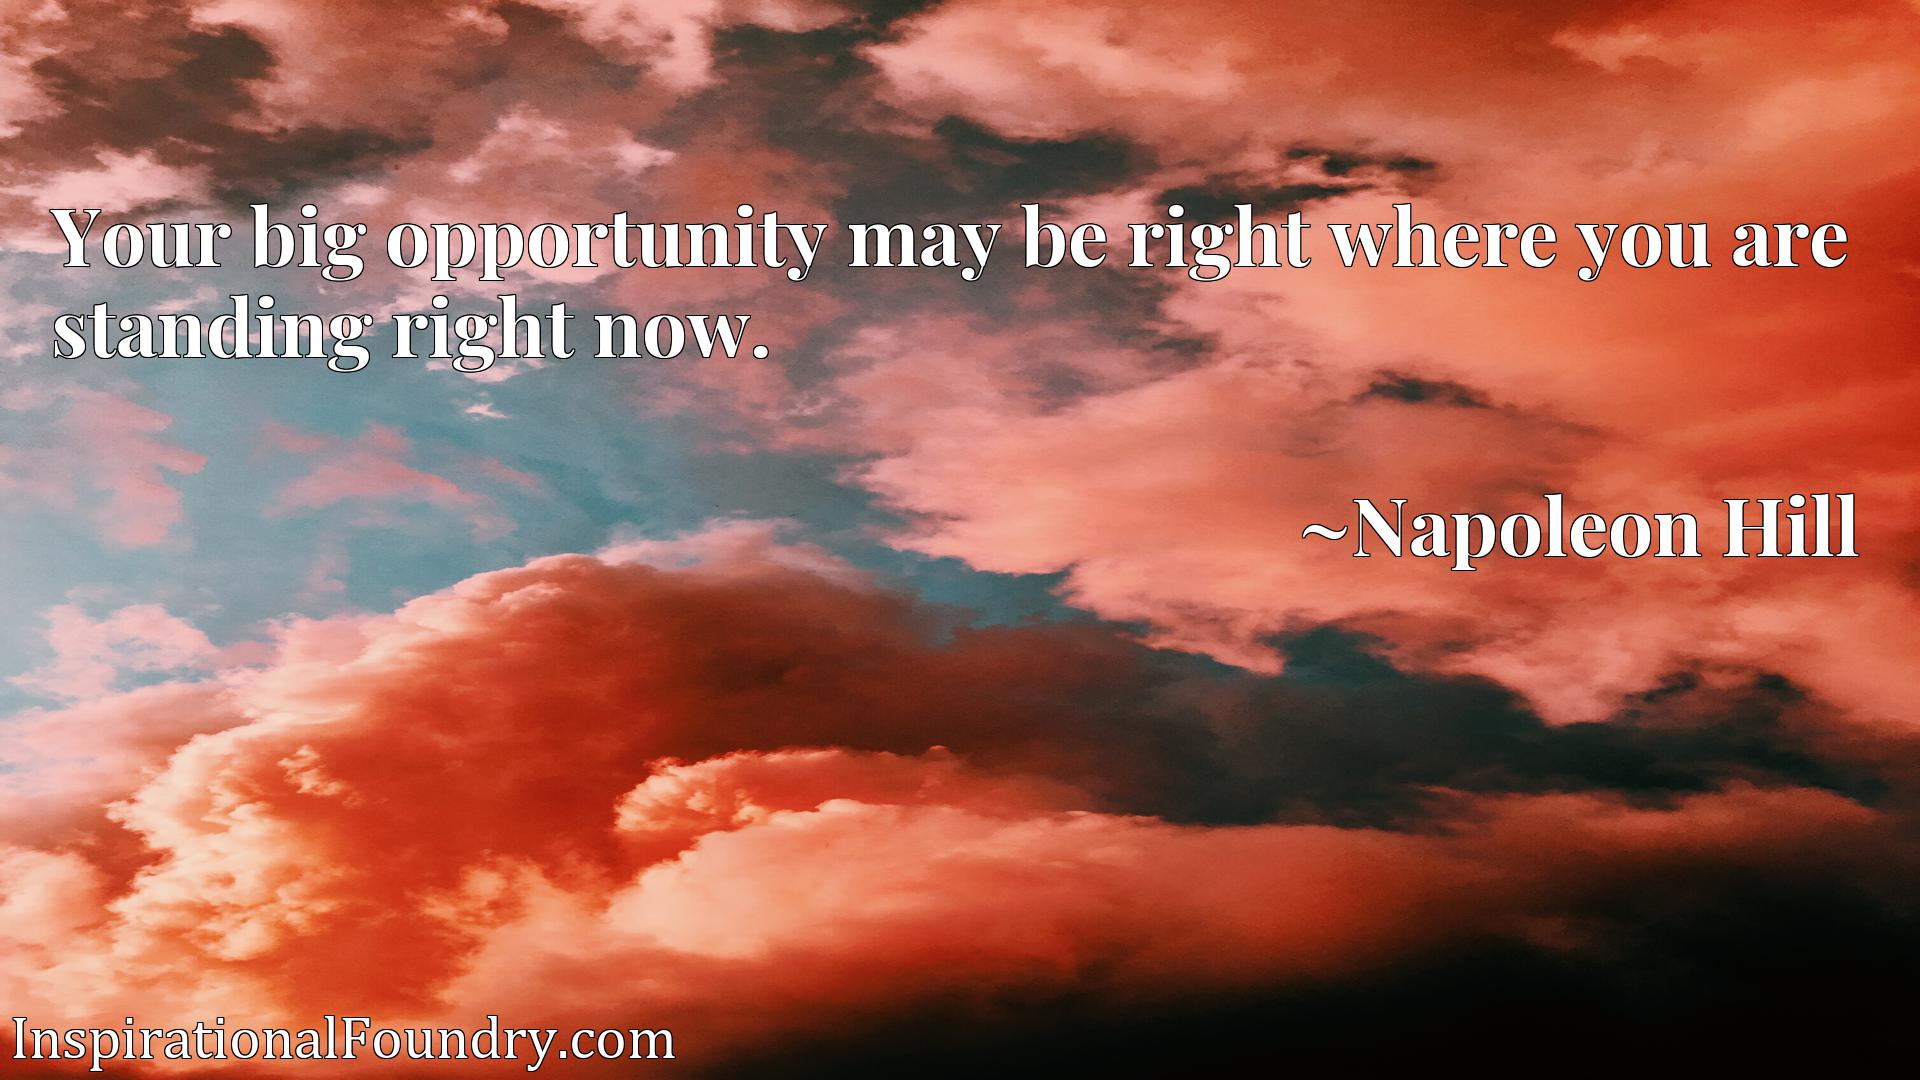 Your big opportunity may be right where you are standing right now.